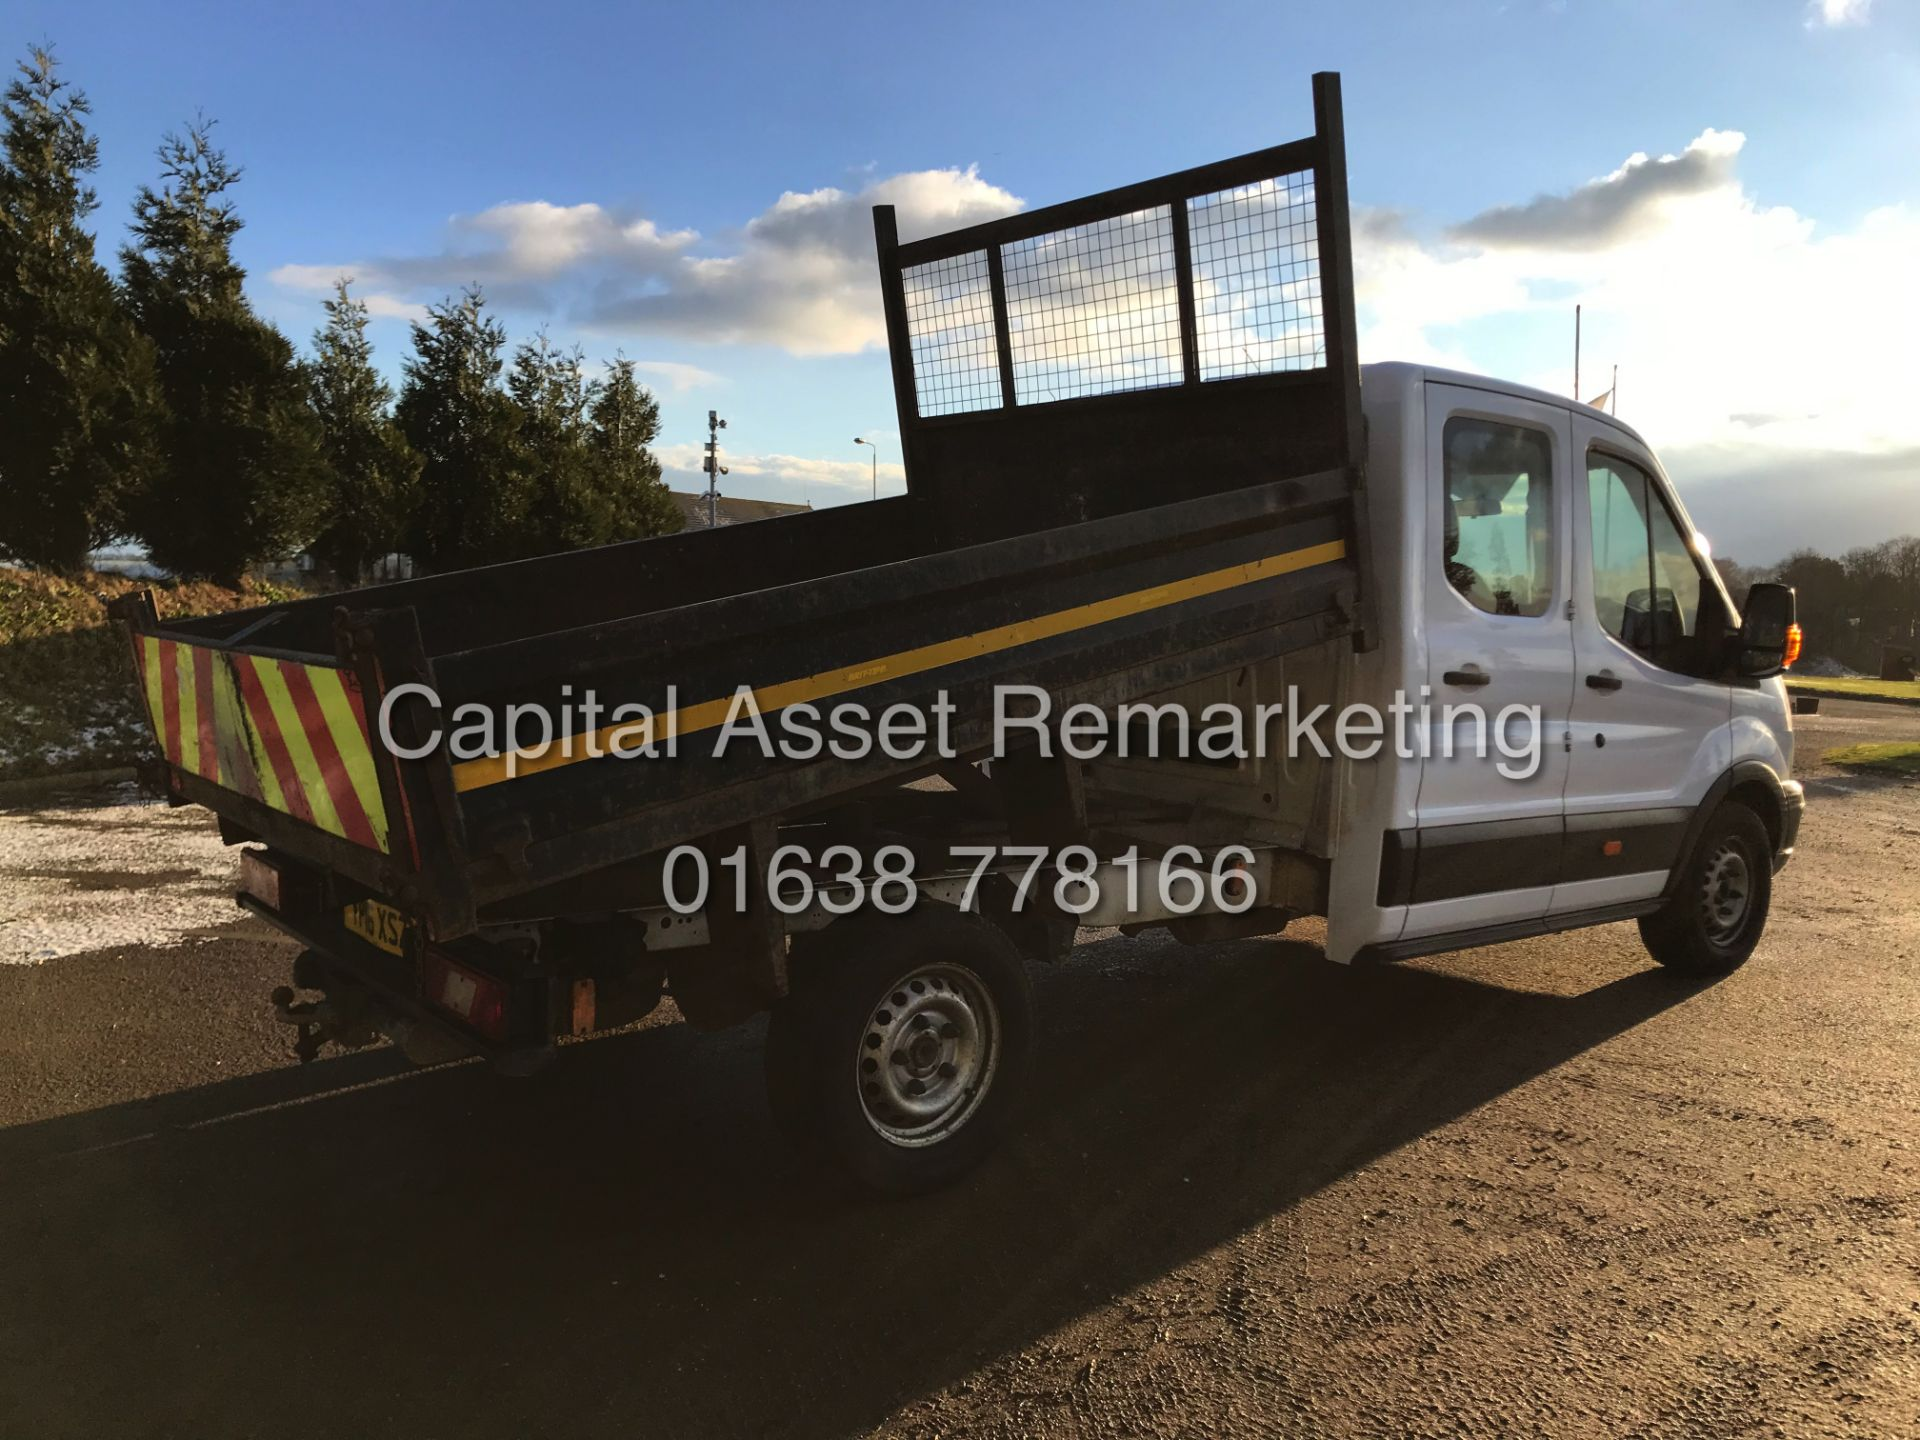 """Lot 25 - FORD TRANSIT 2.2TDCI T350 """"125PSI* TIPPER (16 REG-NEW SHAPE) 1 OWNER -DOUBLE CAB / 4 DOOR / 7 SEATER"""